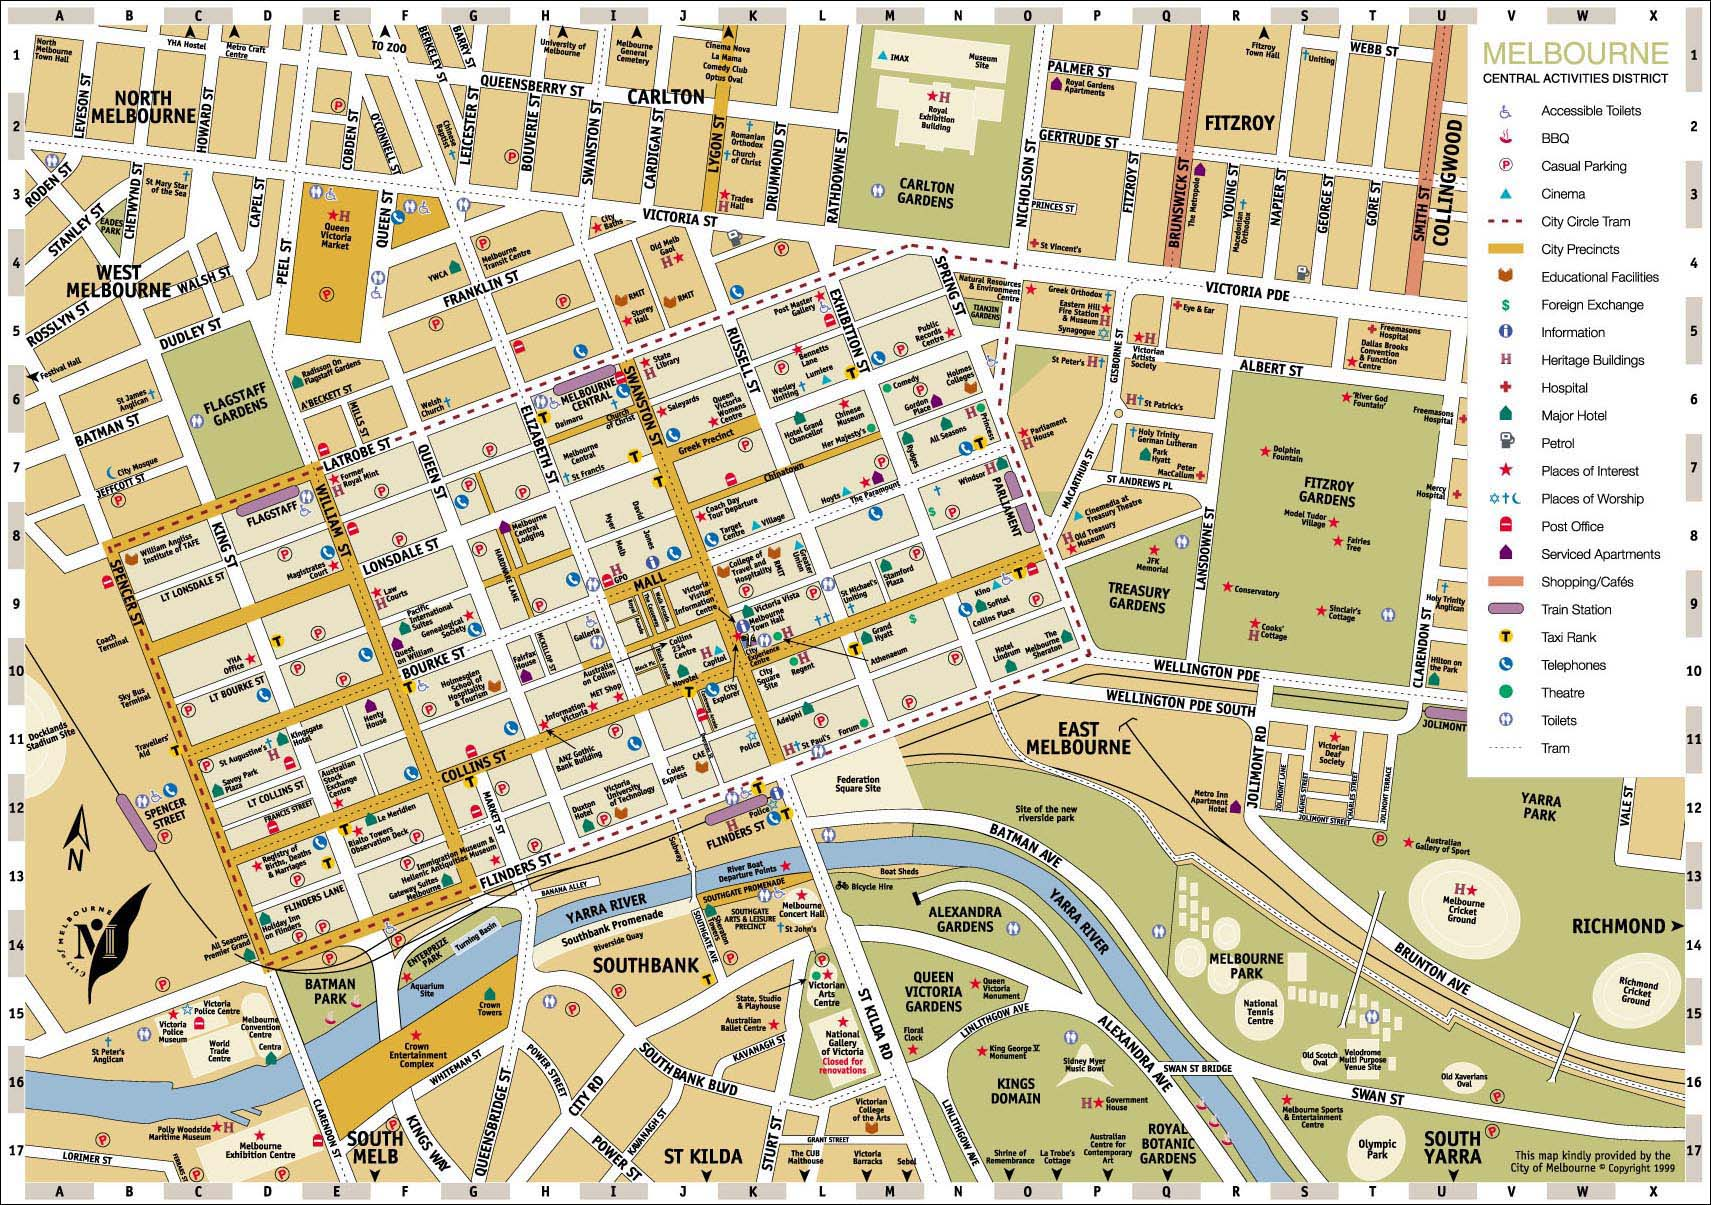 Melbourne Central District Tourist Map Melbourne Australia mappery